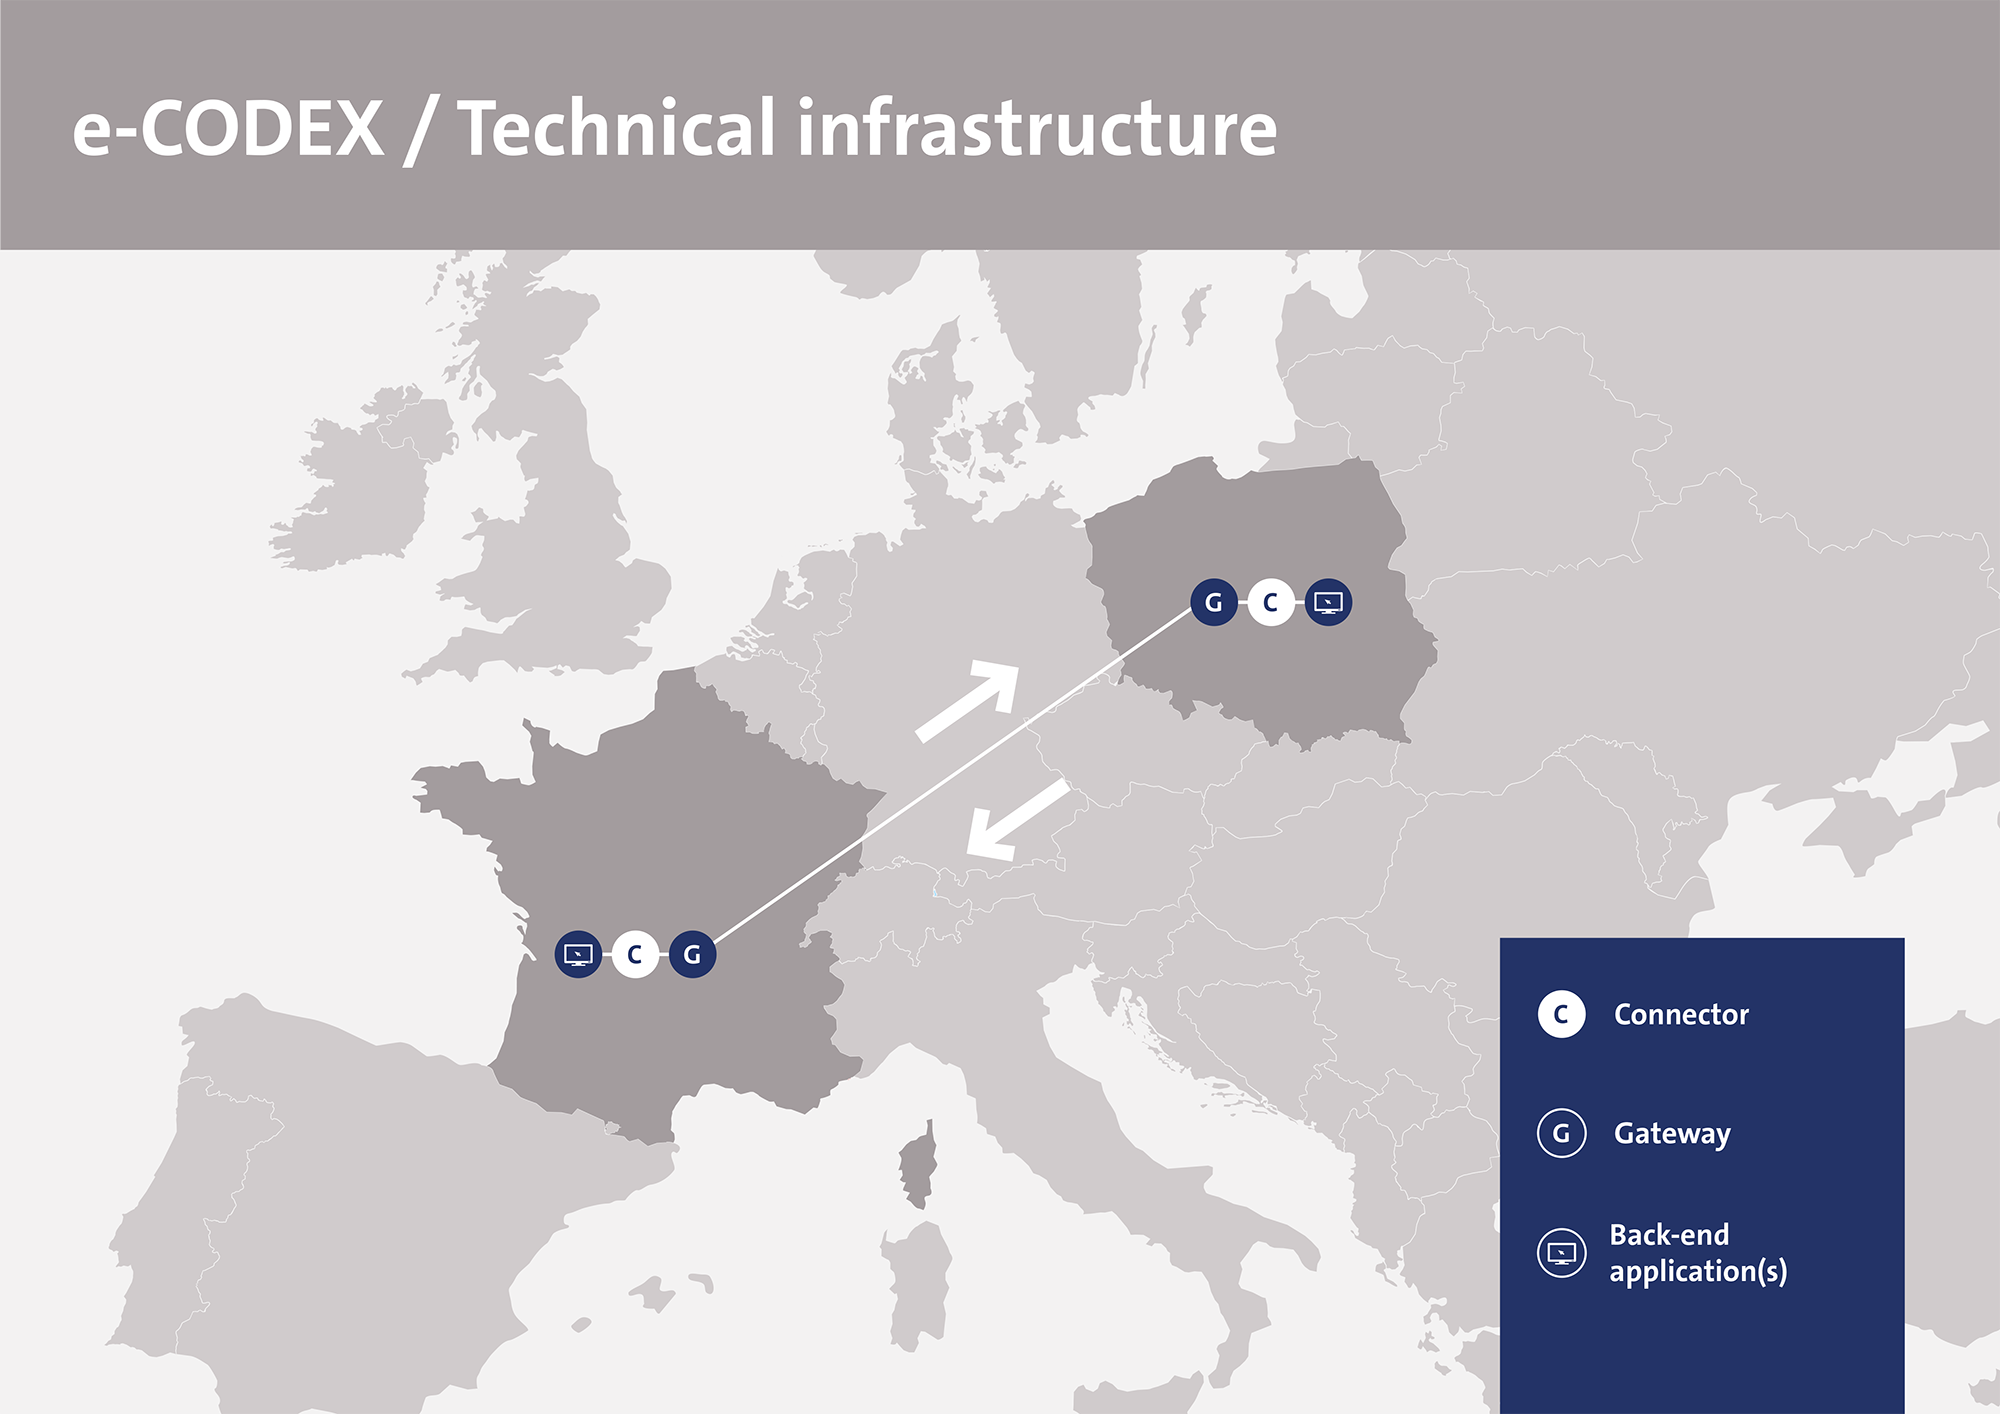 e-CODEX Technical infrastructure: cross-border communication